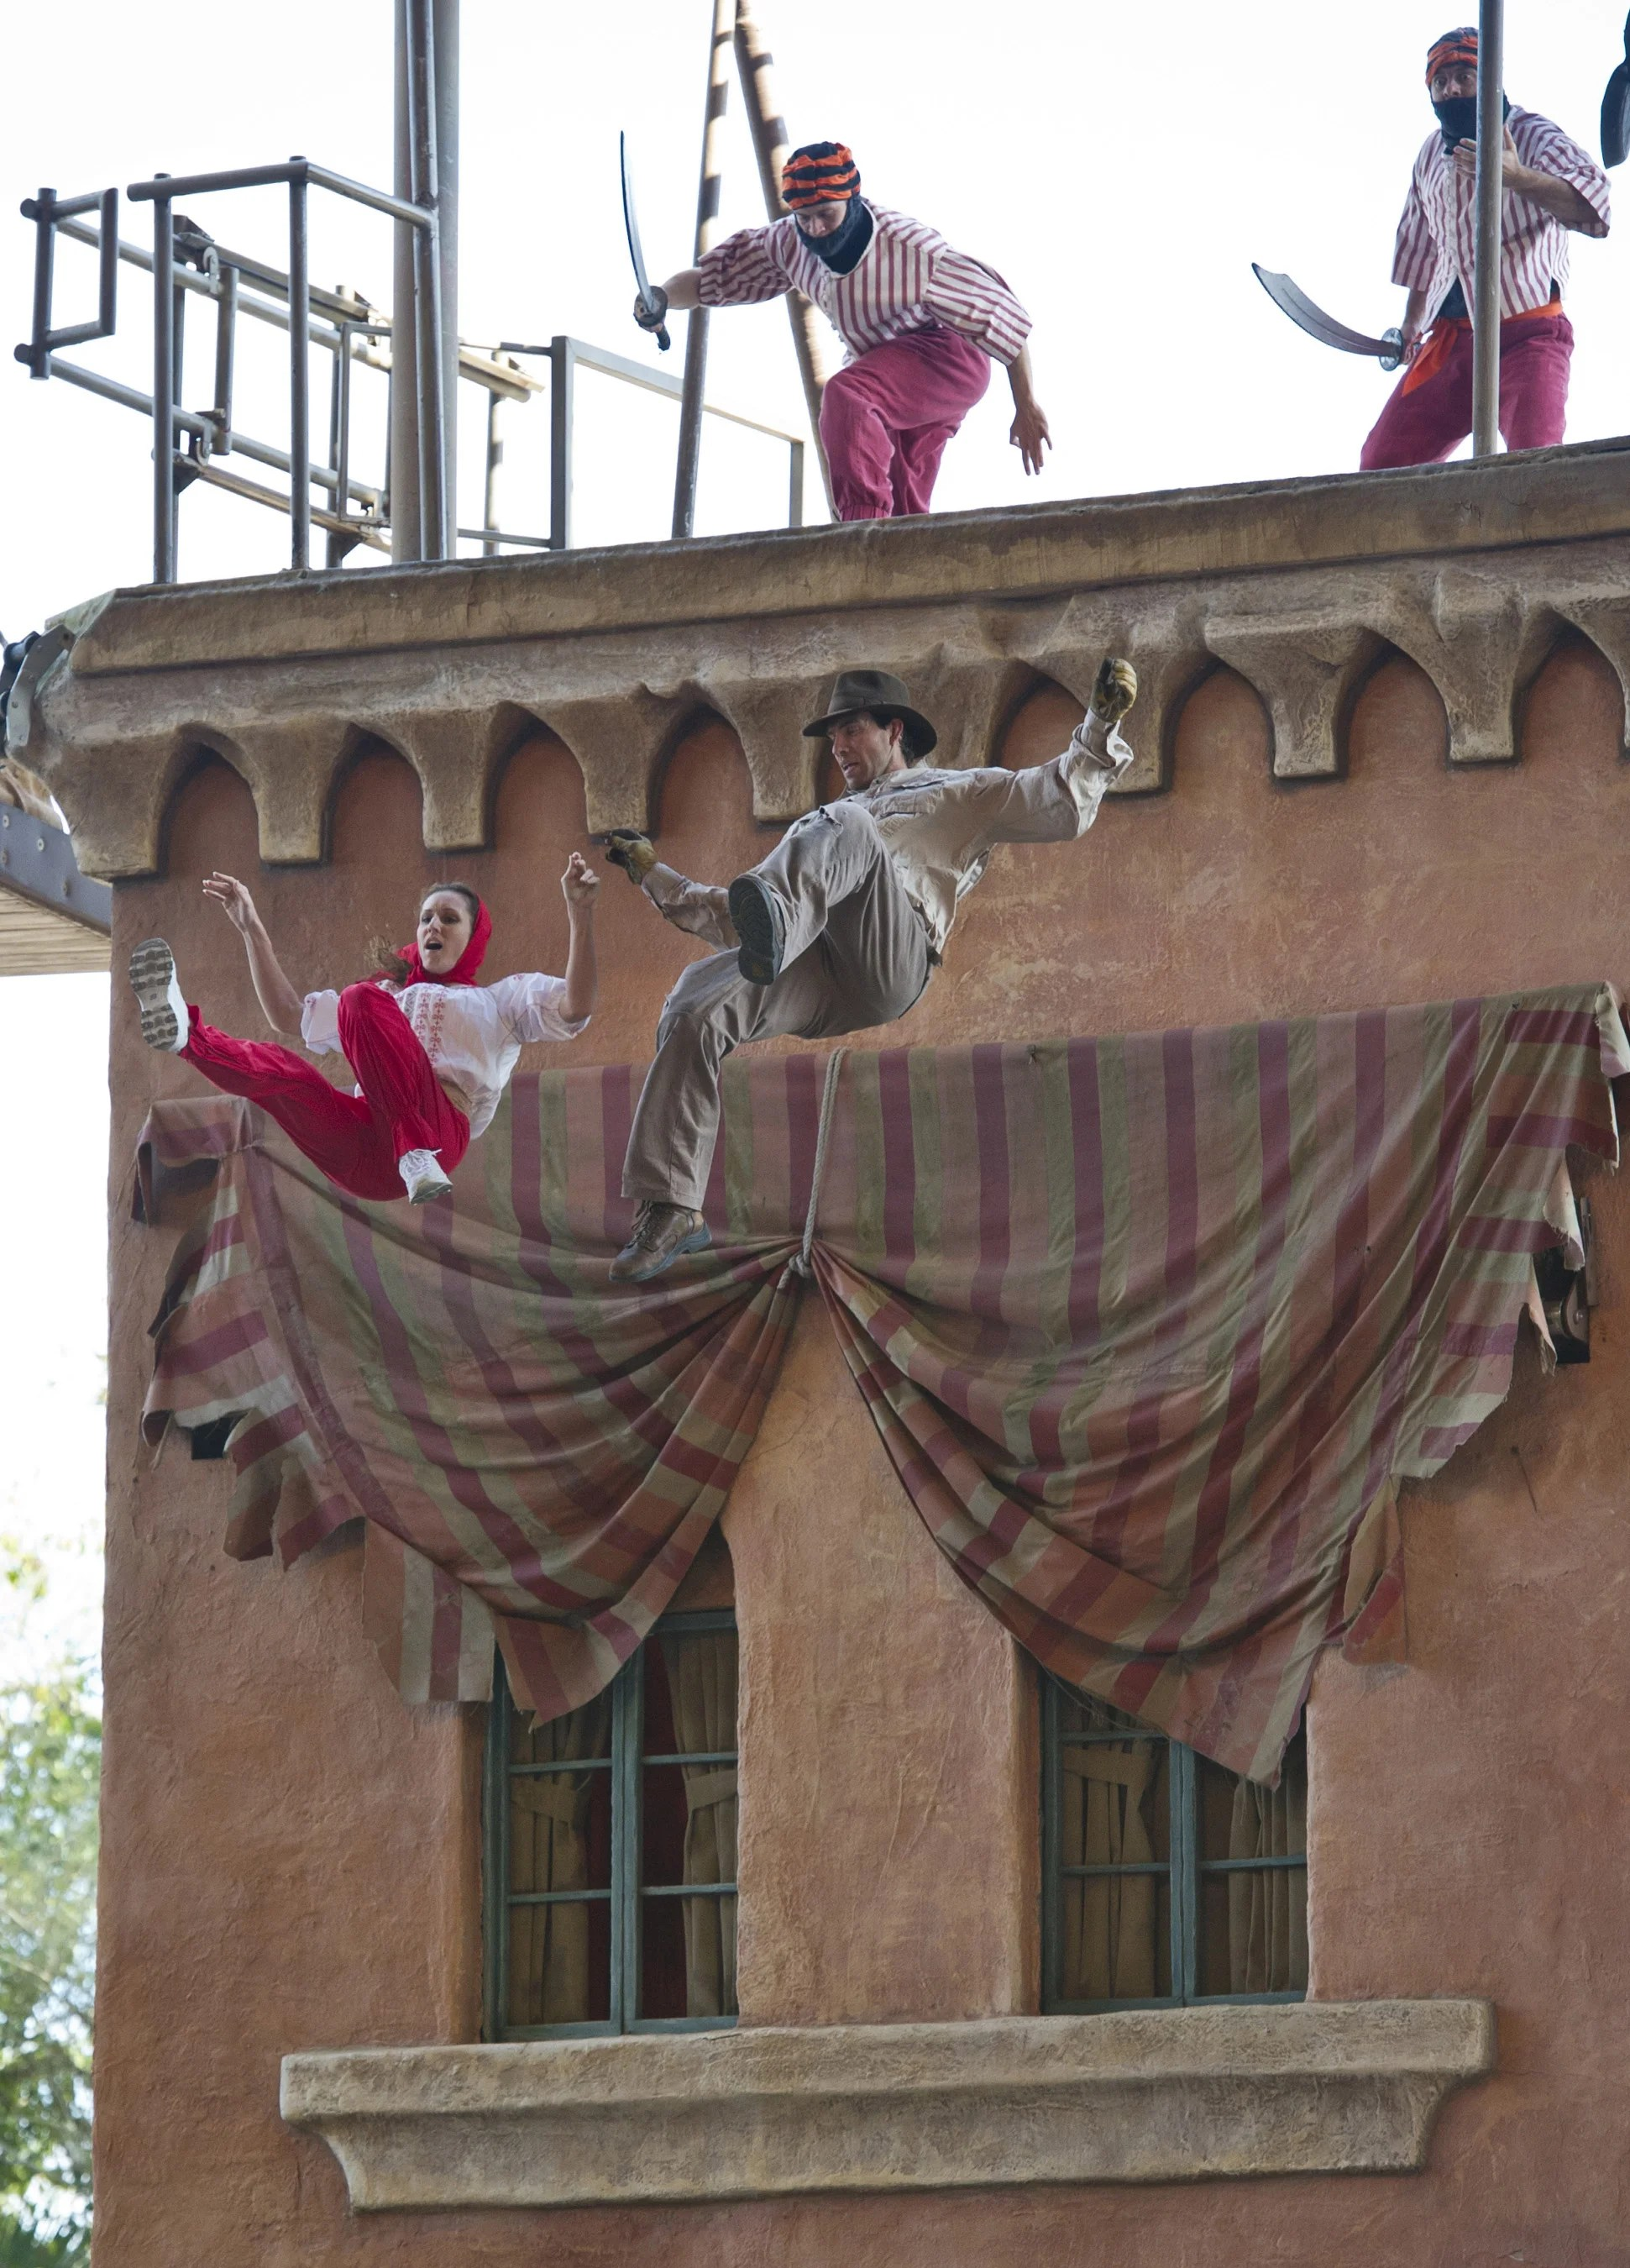 Indiana Jones Epic Stunt Spectacular! at Disney's Hollywood Studios